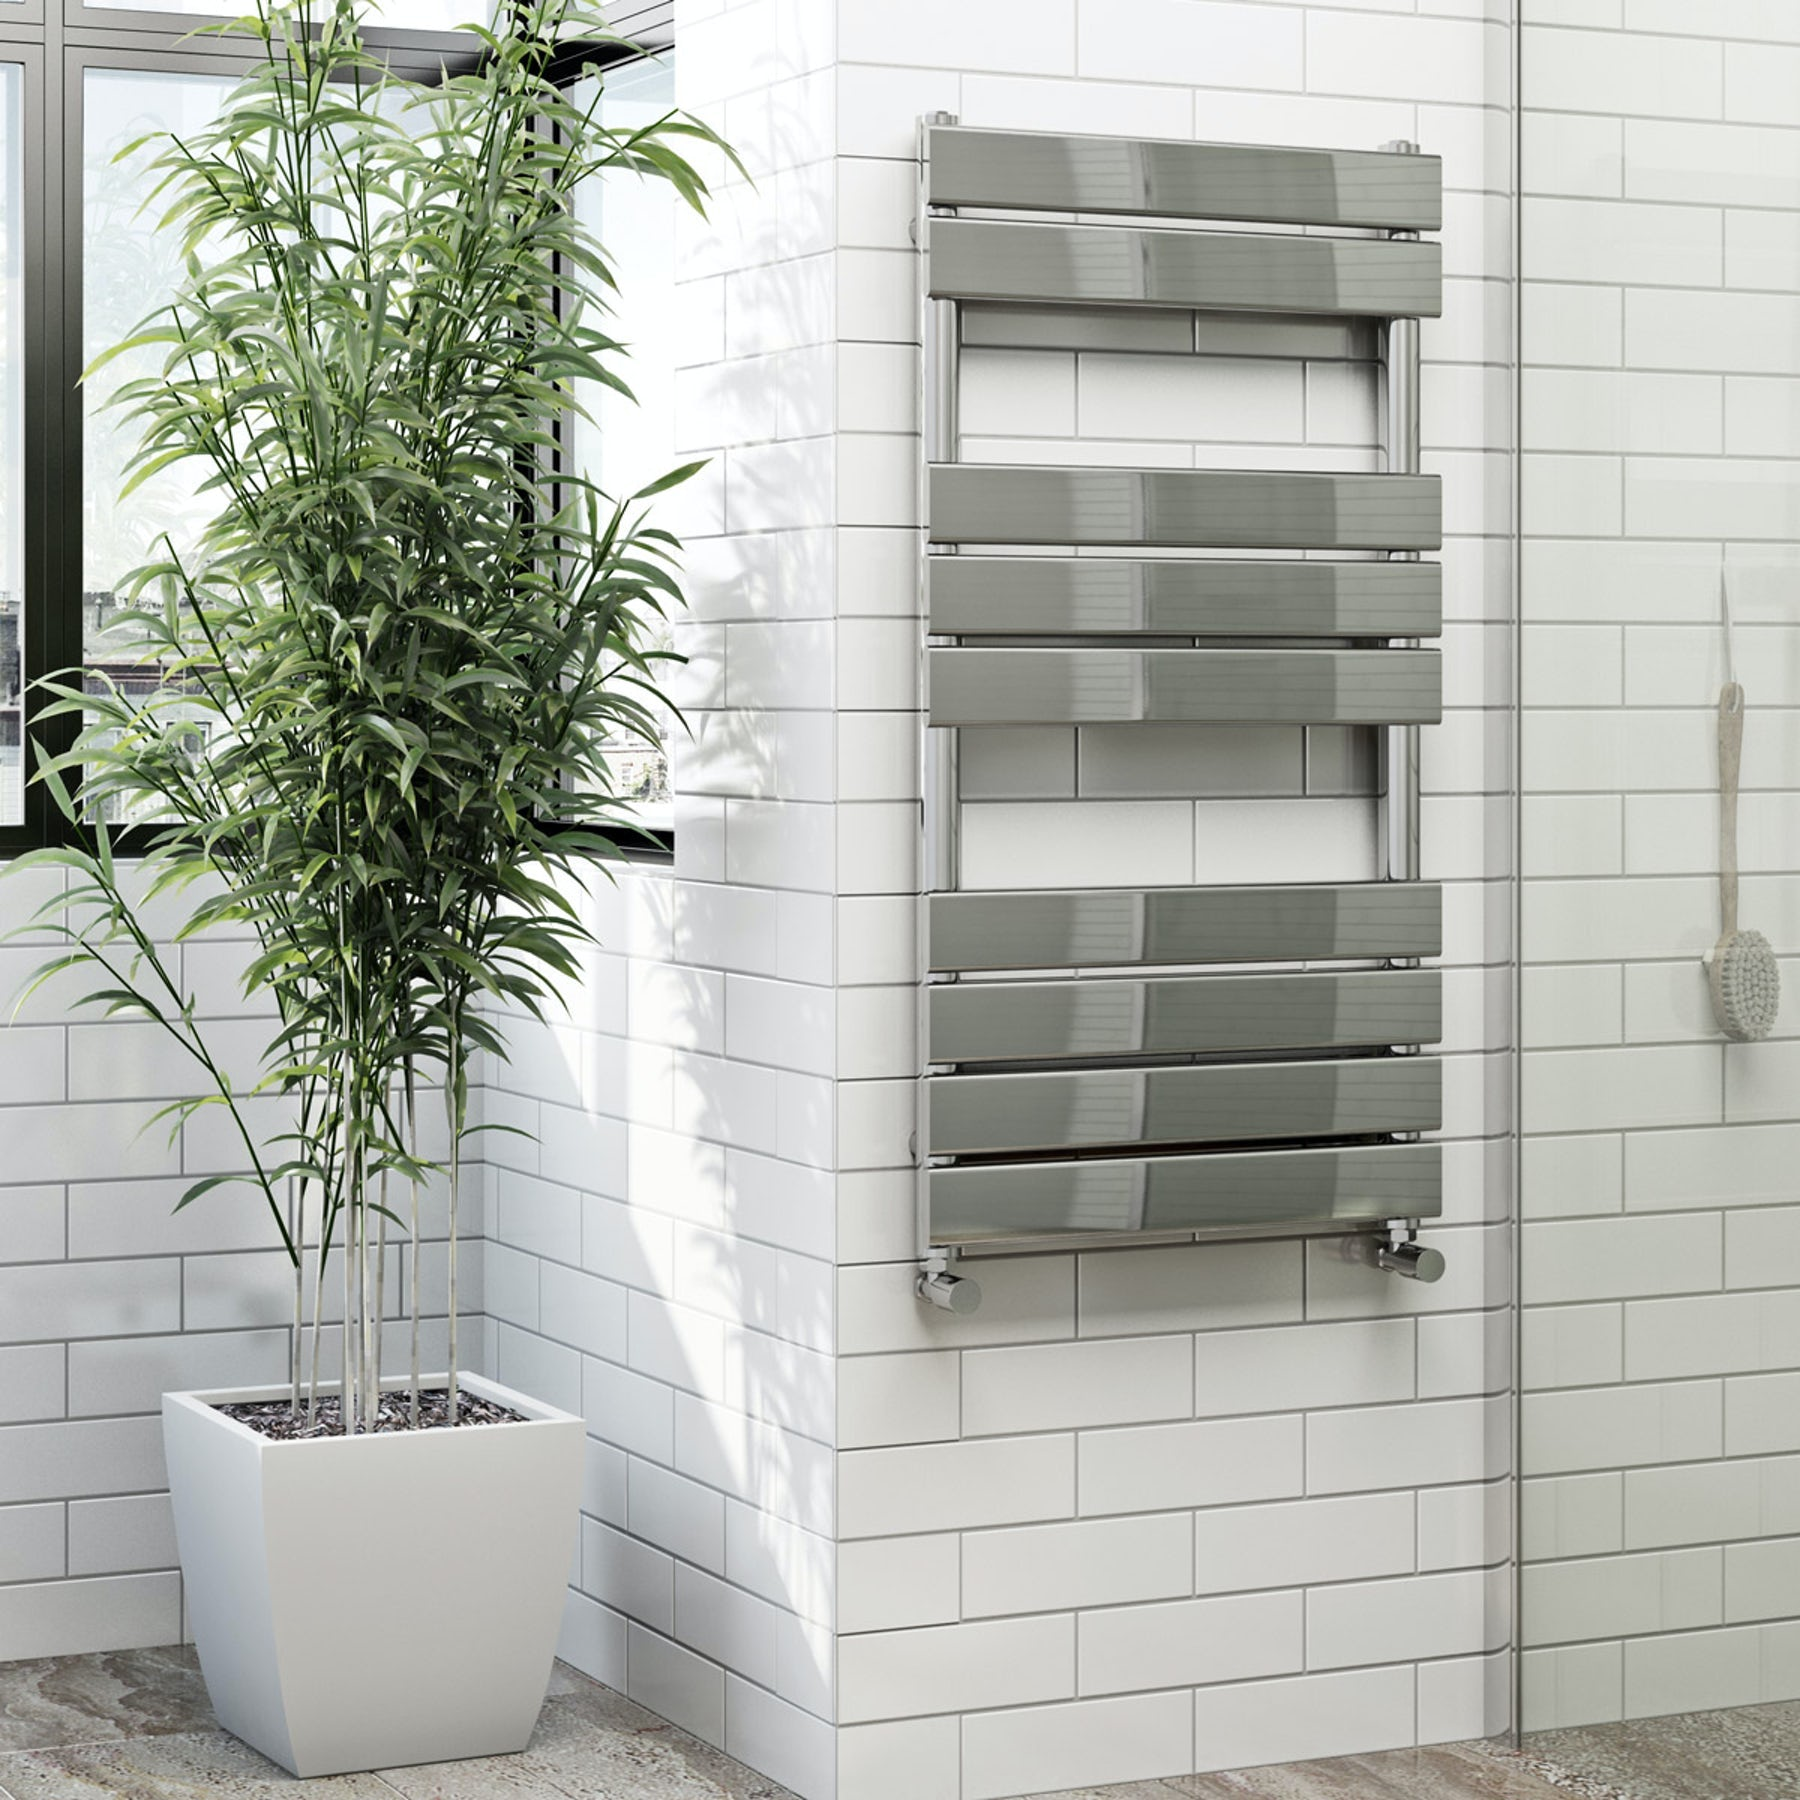 Bathroom heated towel rails at Victoria Plum